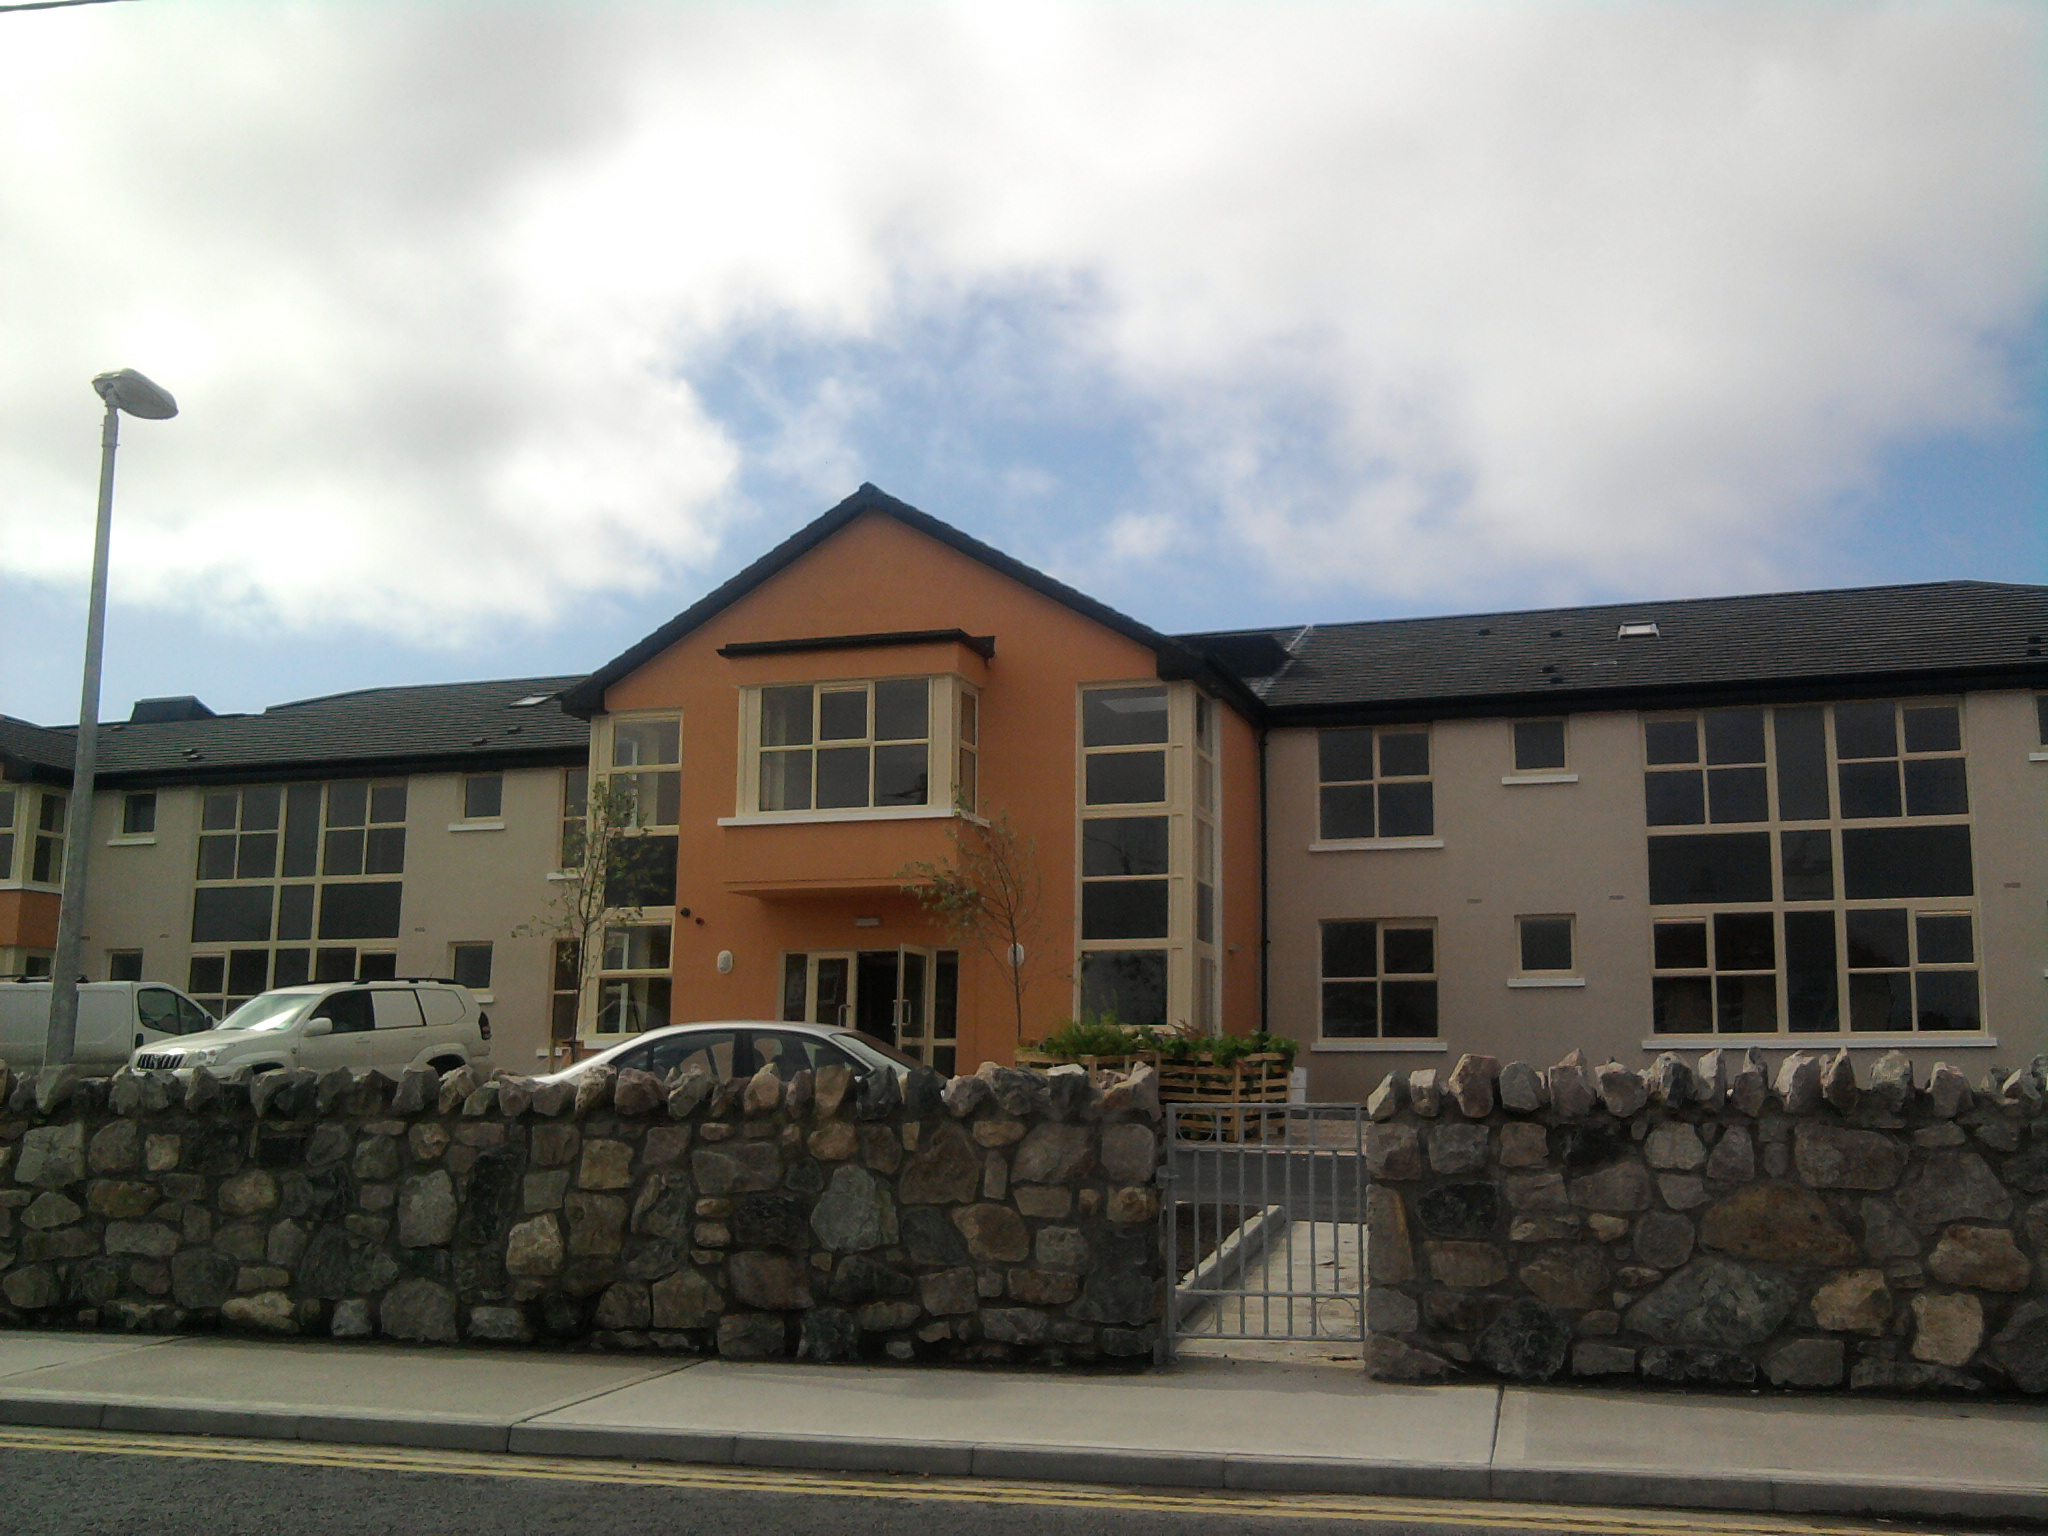 St. Mary's Residential Care Centre picture